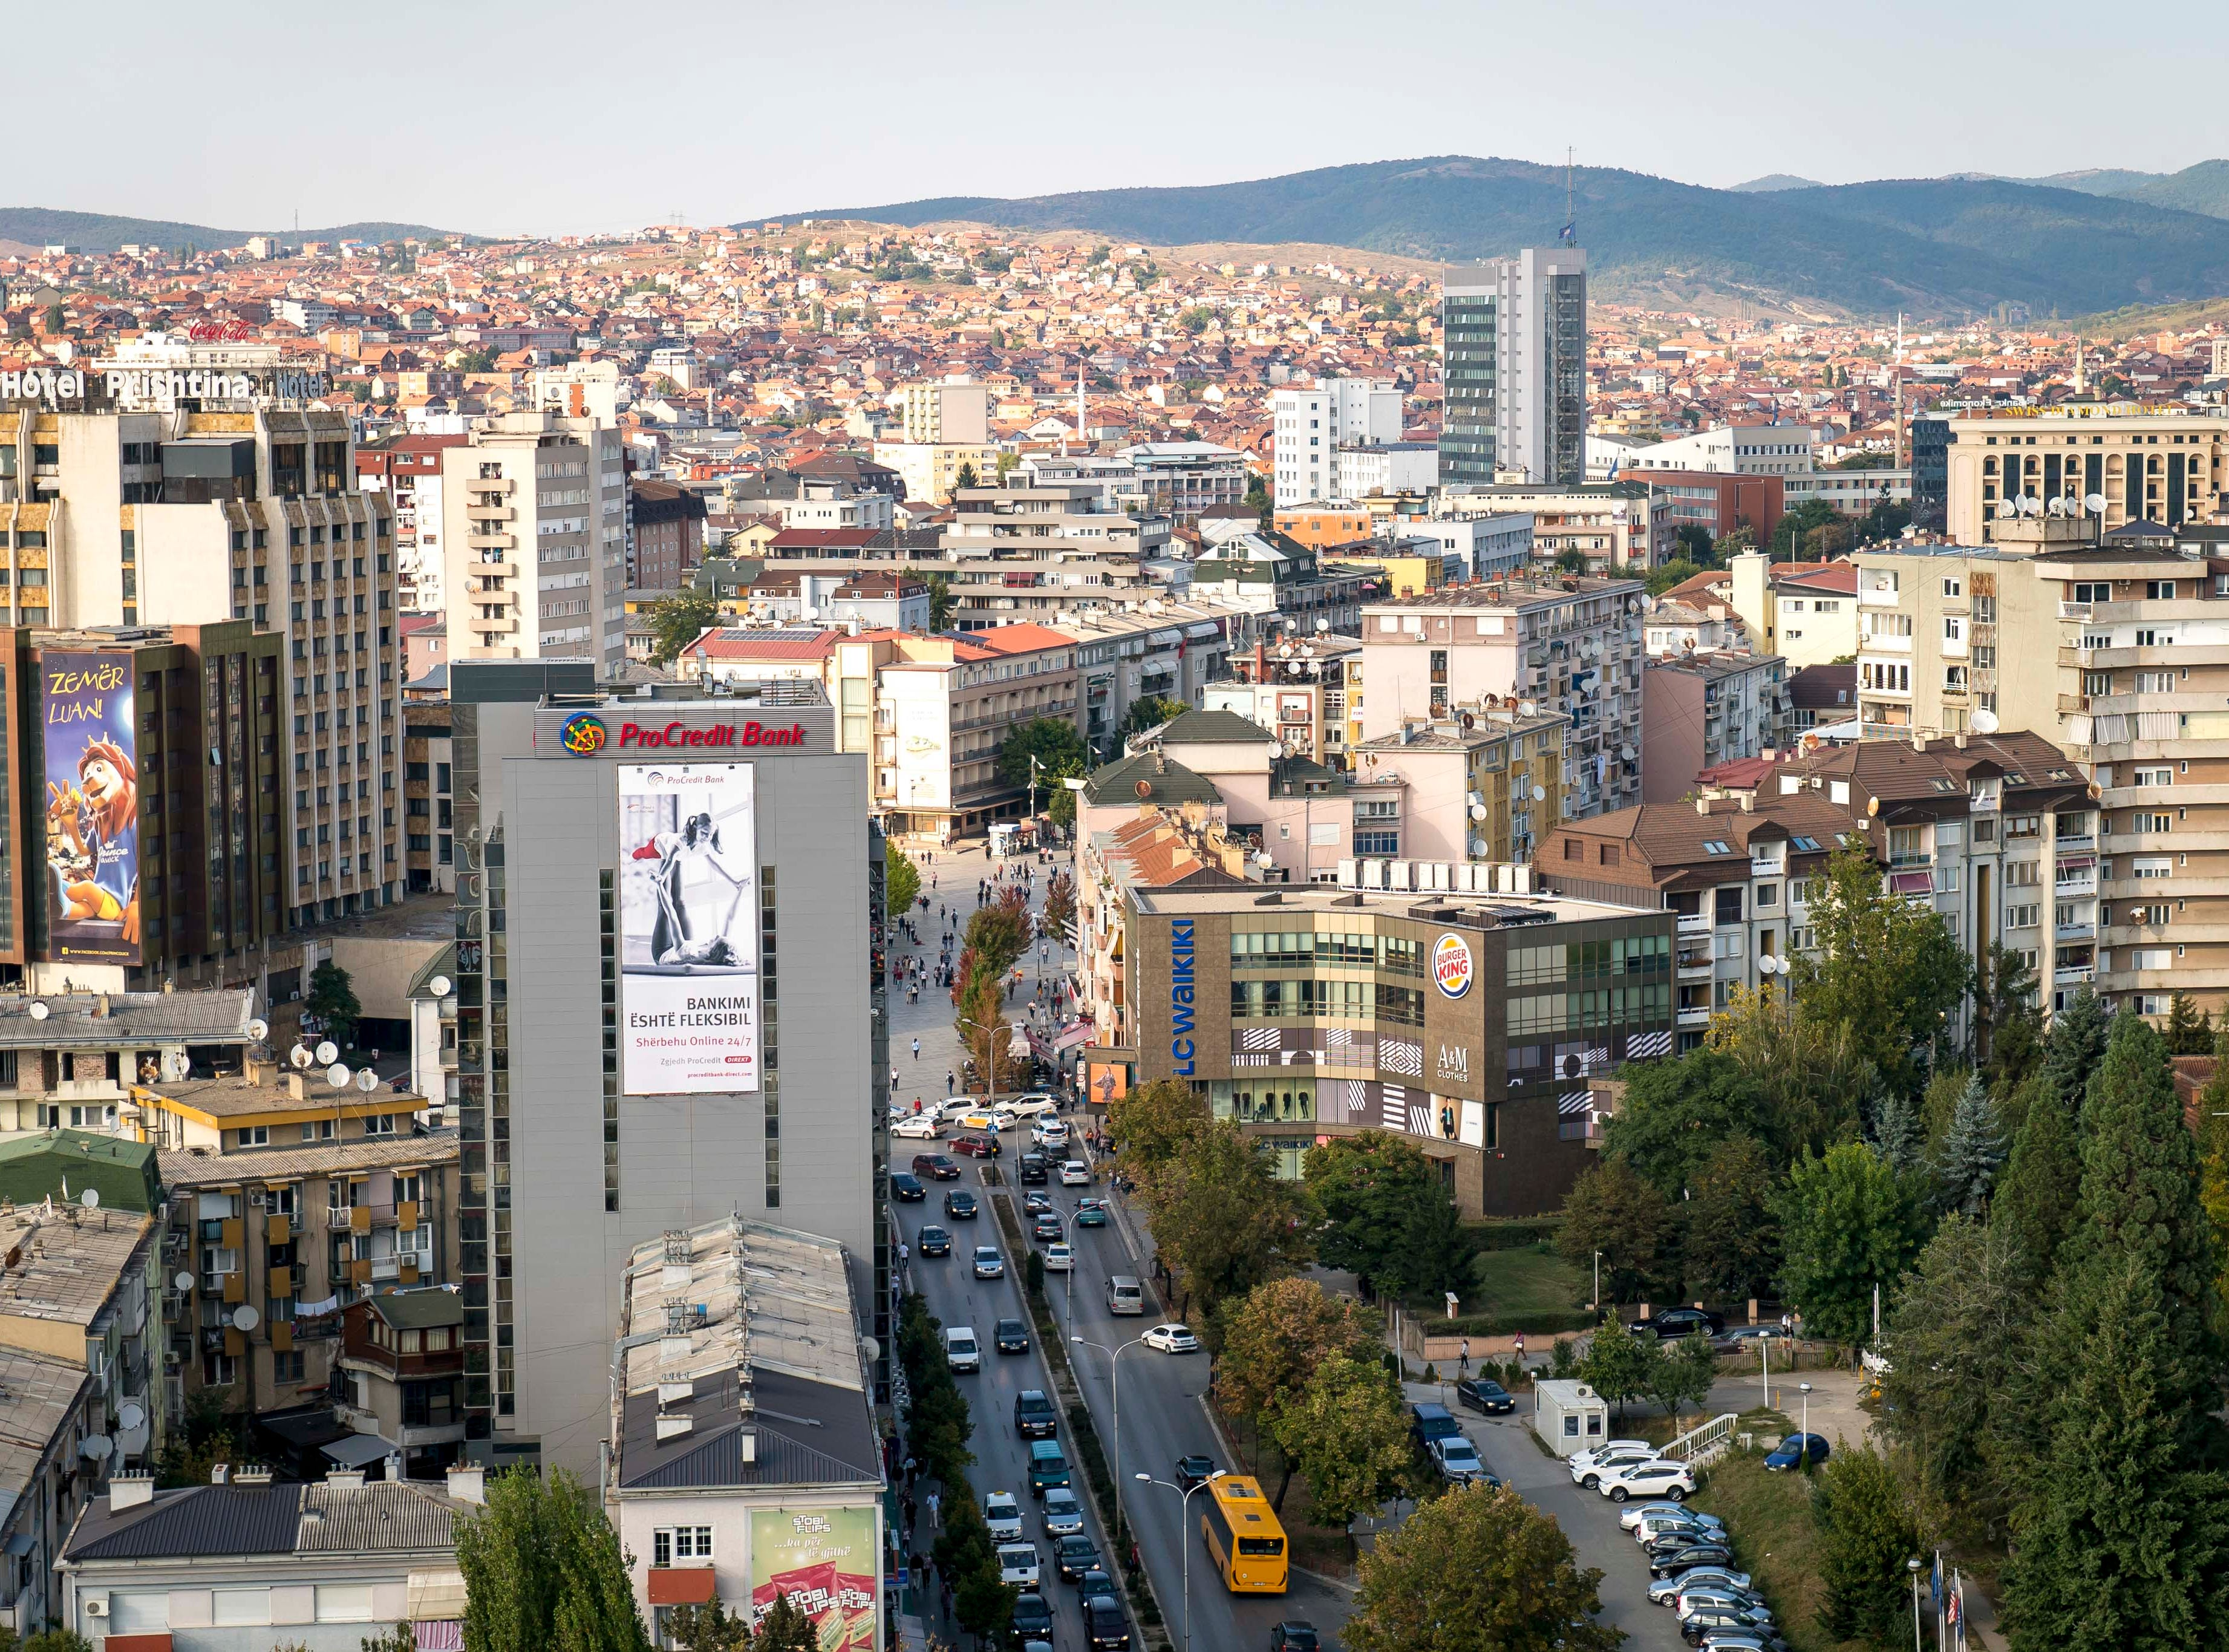 Pristina, Kosovo, Tuesday, Sept. 18, 2018. Iowa is the Sister State to Kosovo and Des Moines is negotiating to become the sister city to Pristina.